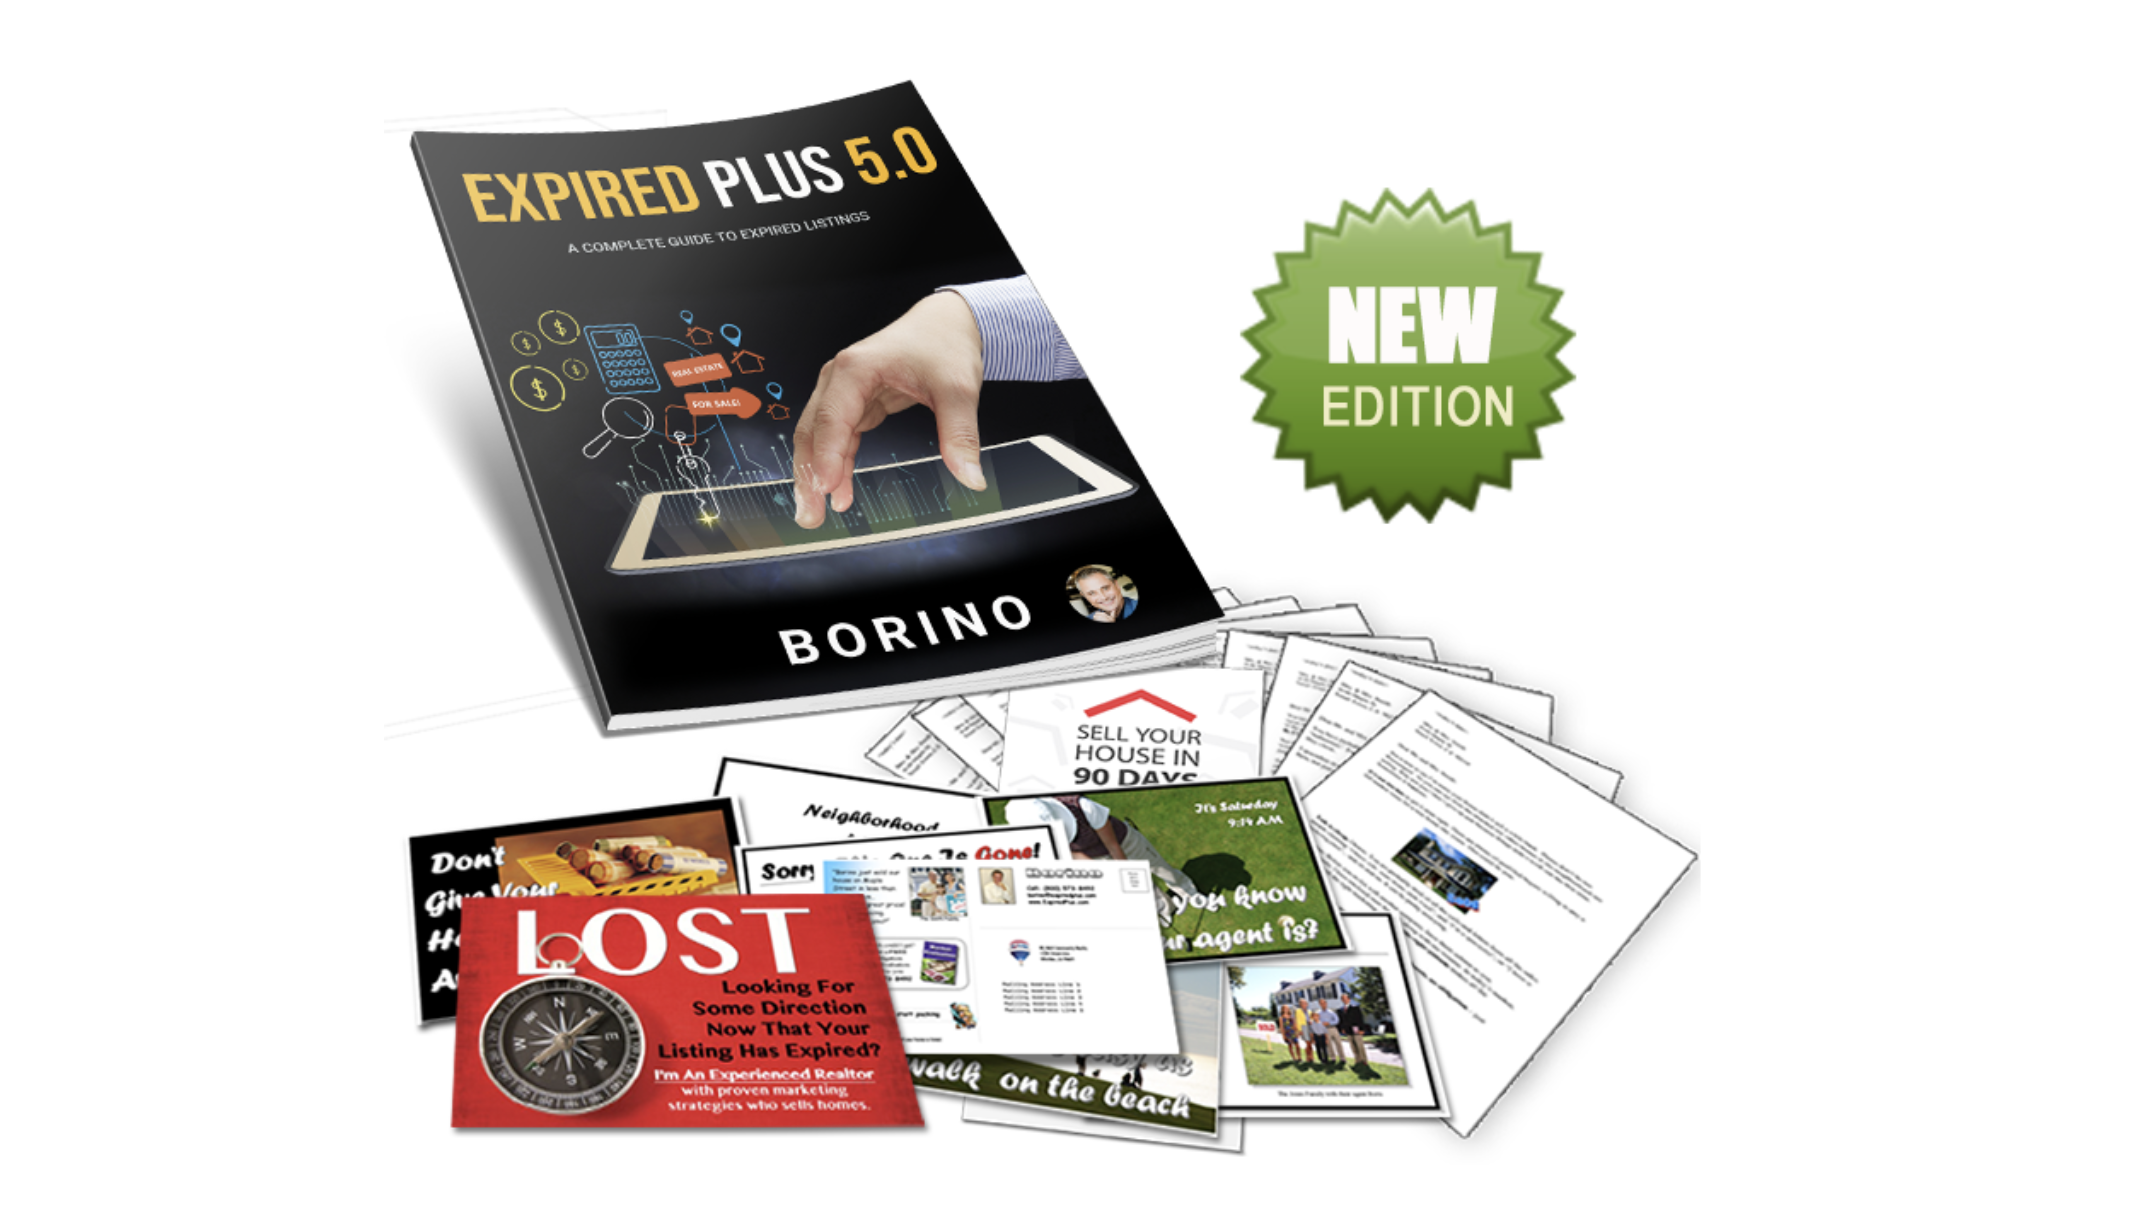 Borino's Expired PLUS real estate system